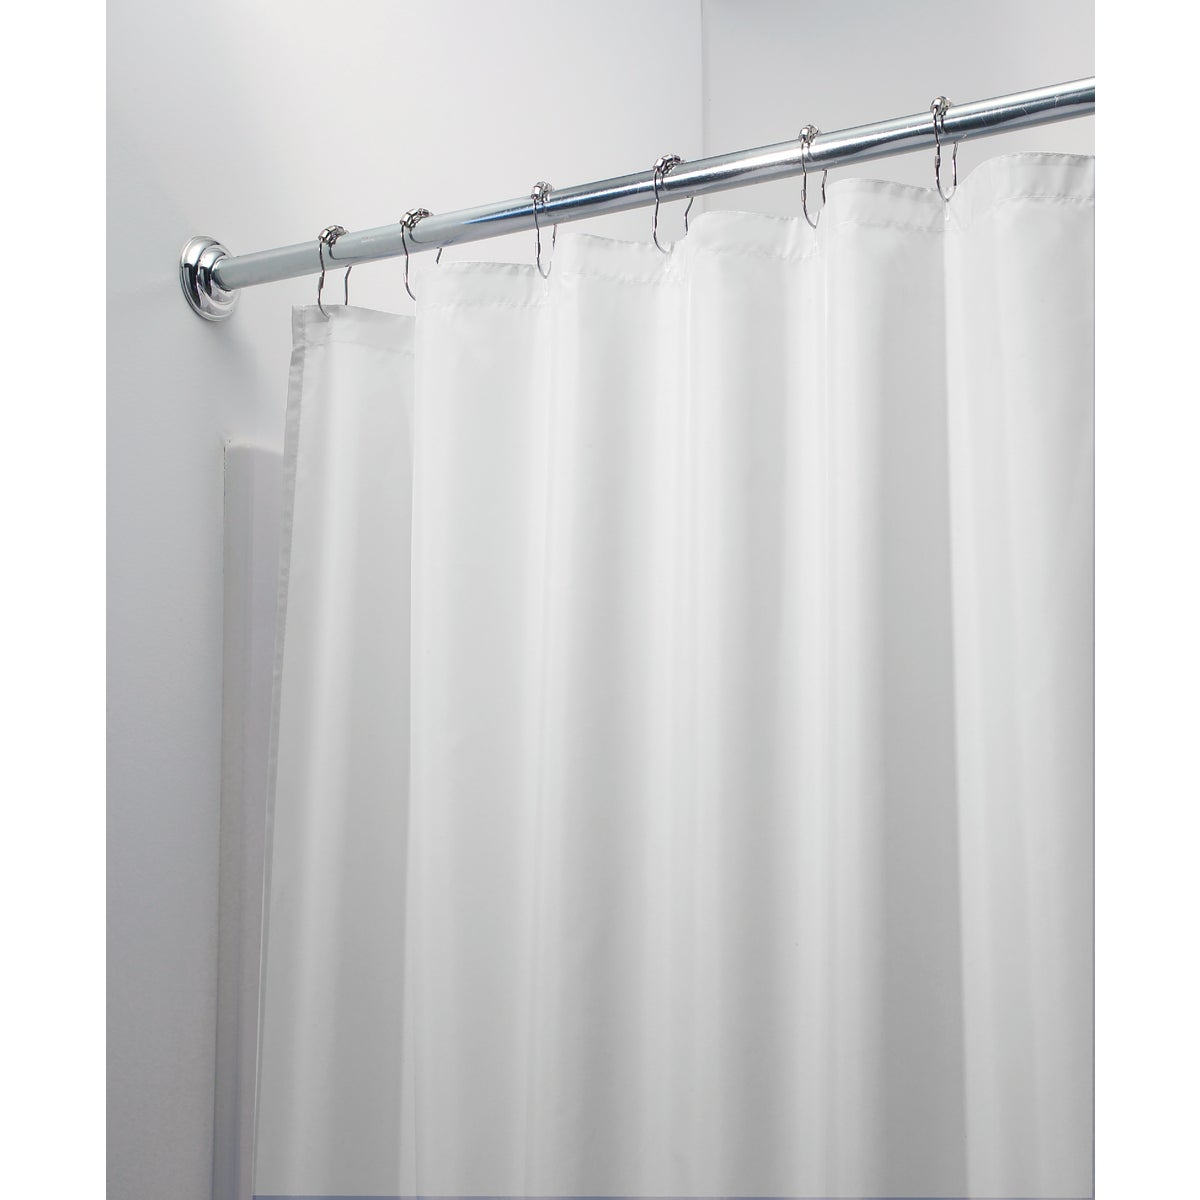 WHT POLY SHOWER CURTAIN - 14652 by Interdesign Inc